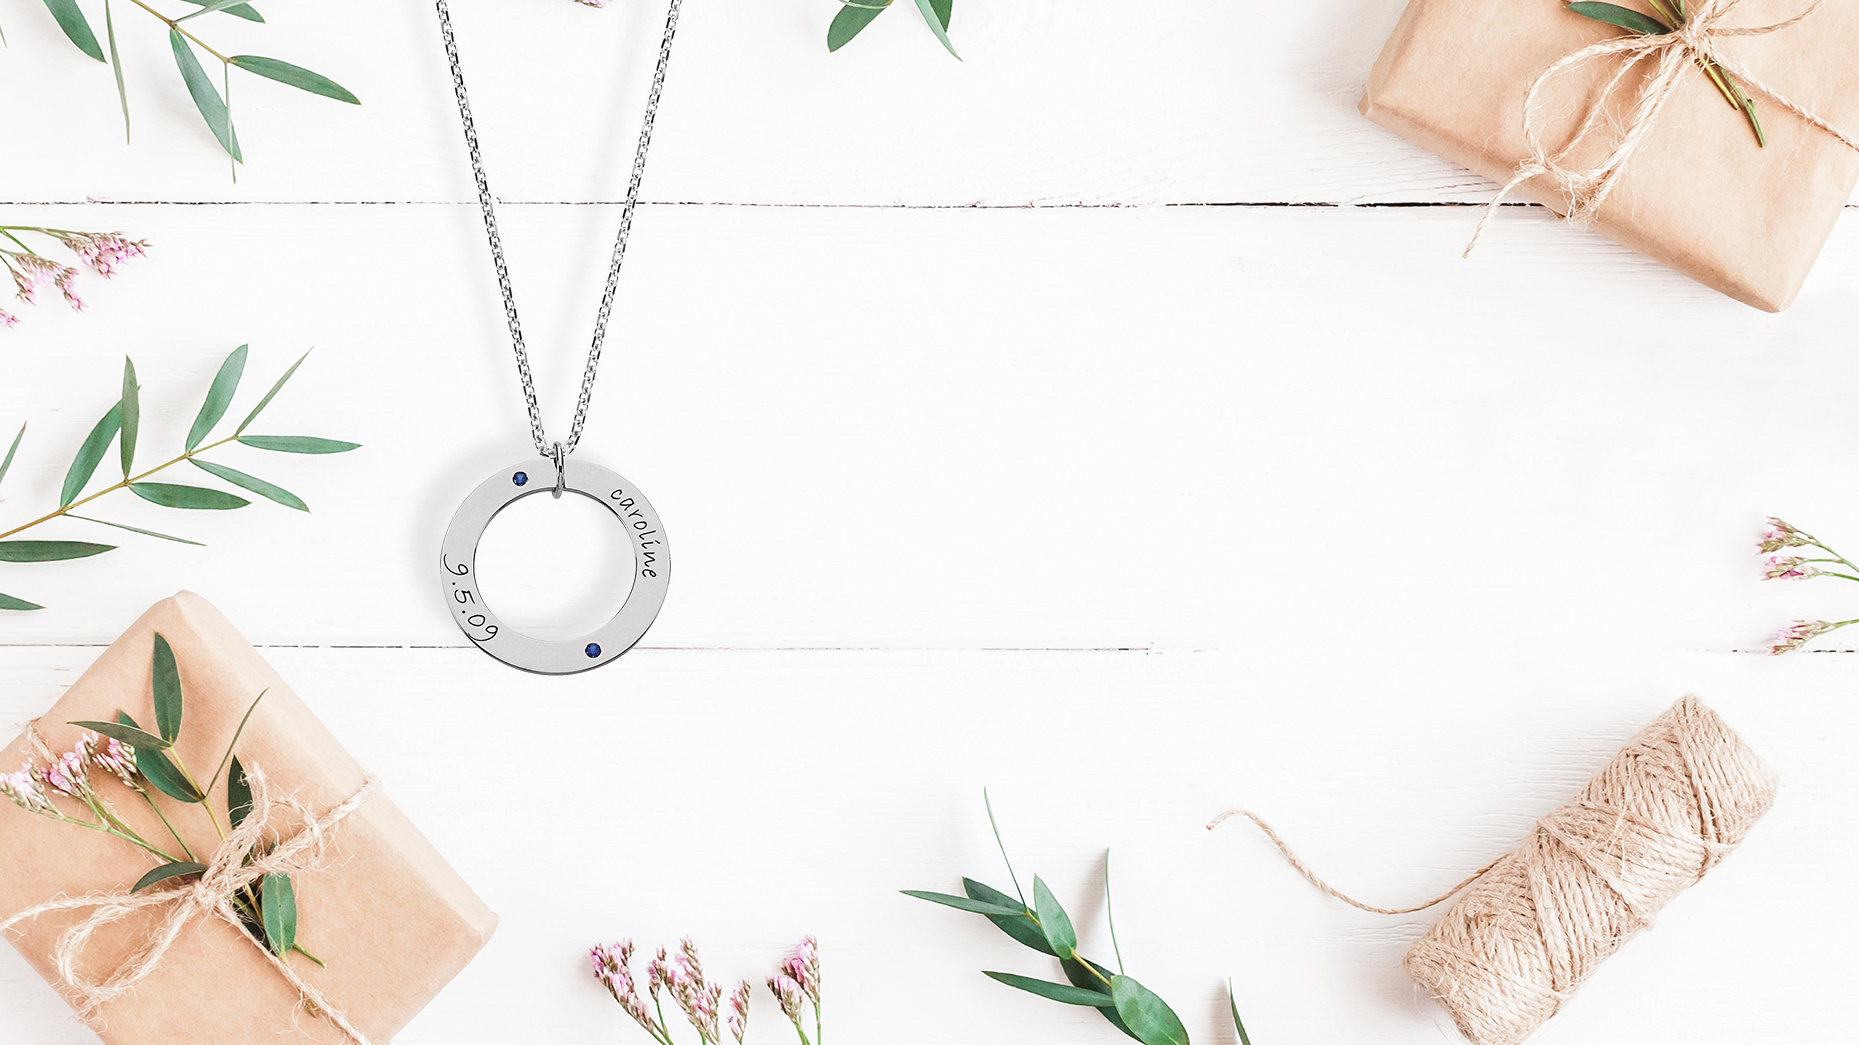 Family necklace on white backdrop with flowers